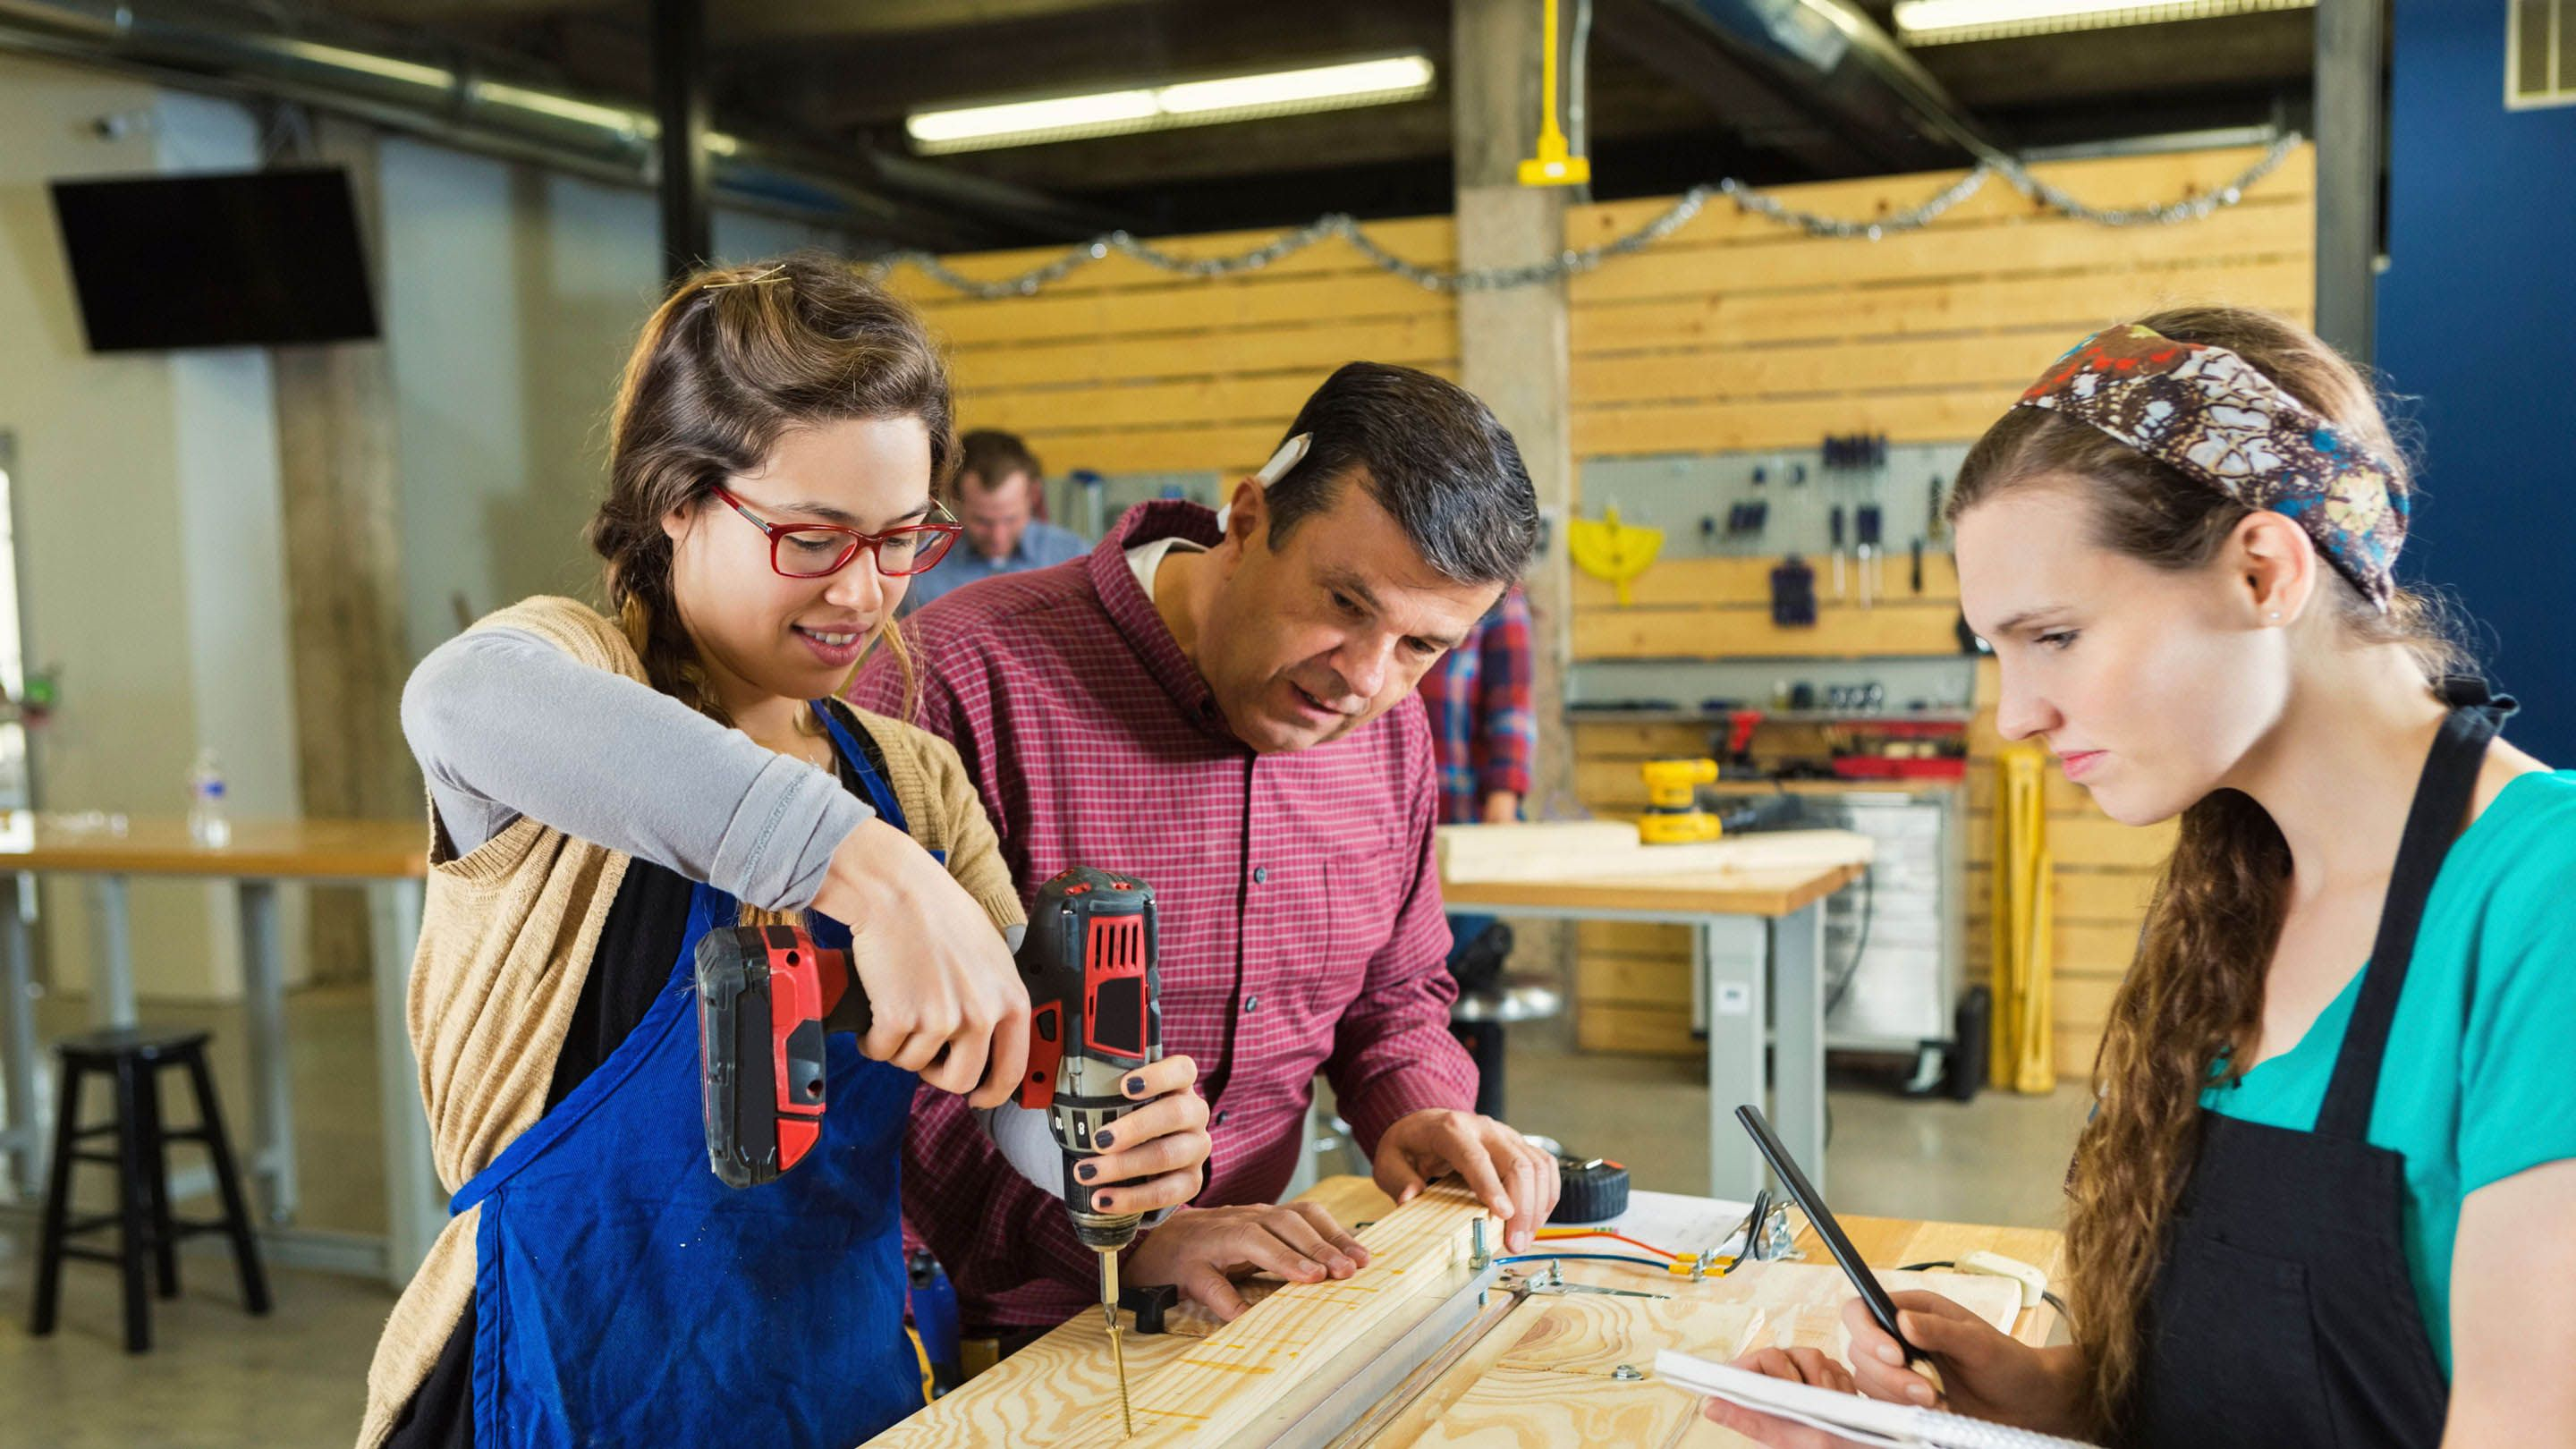 literacy skills in career and technical education classes